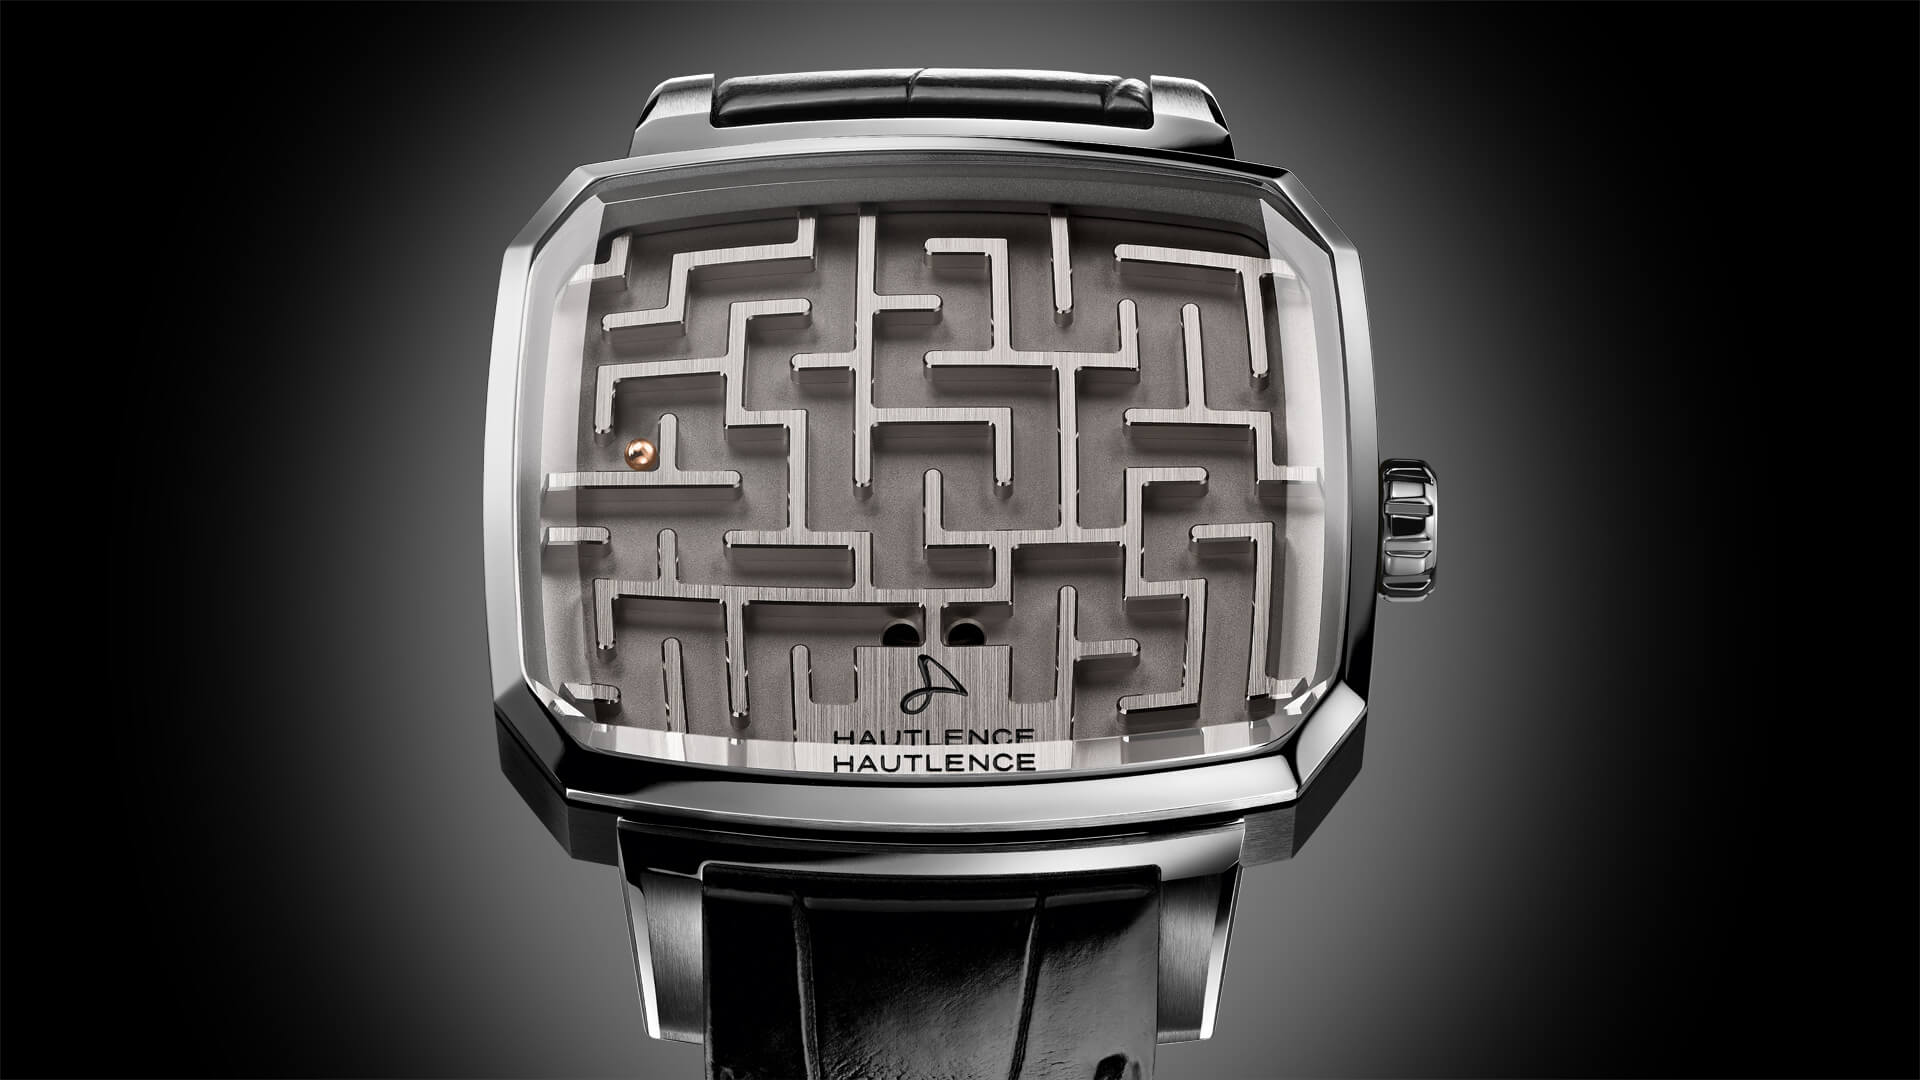 Image of Hautlence for watch review